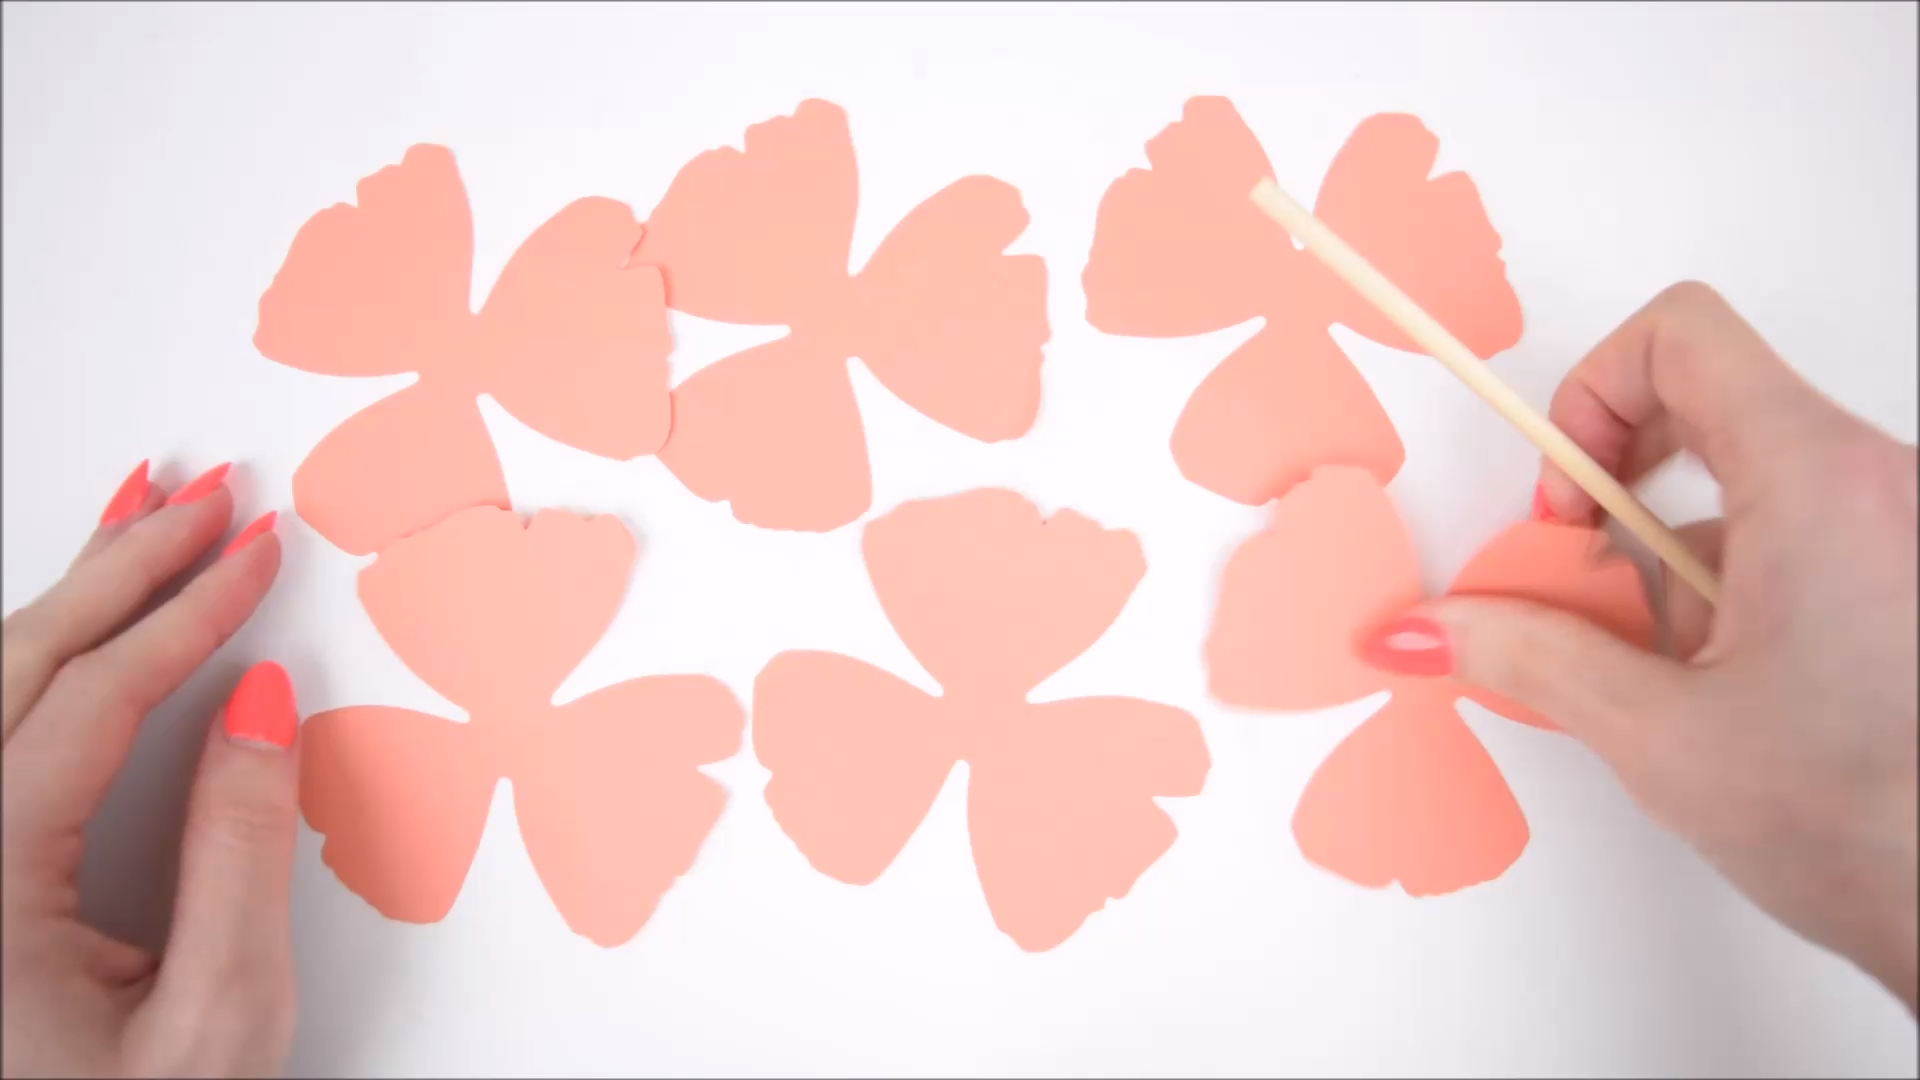 How to Make Small Paper Roses - Easy Paper Flower Tutorial